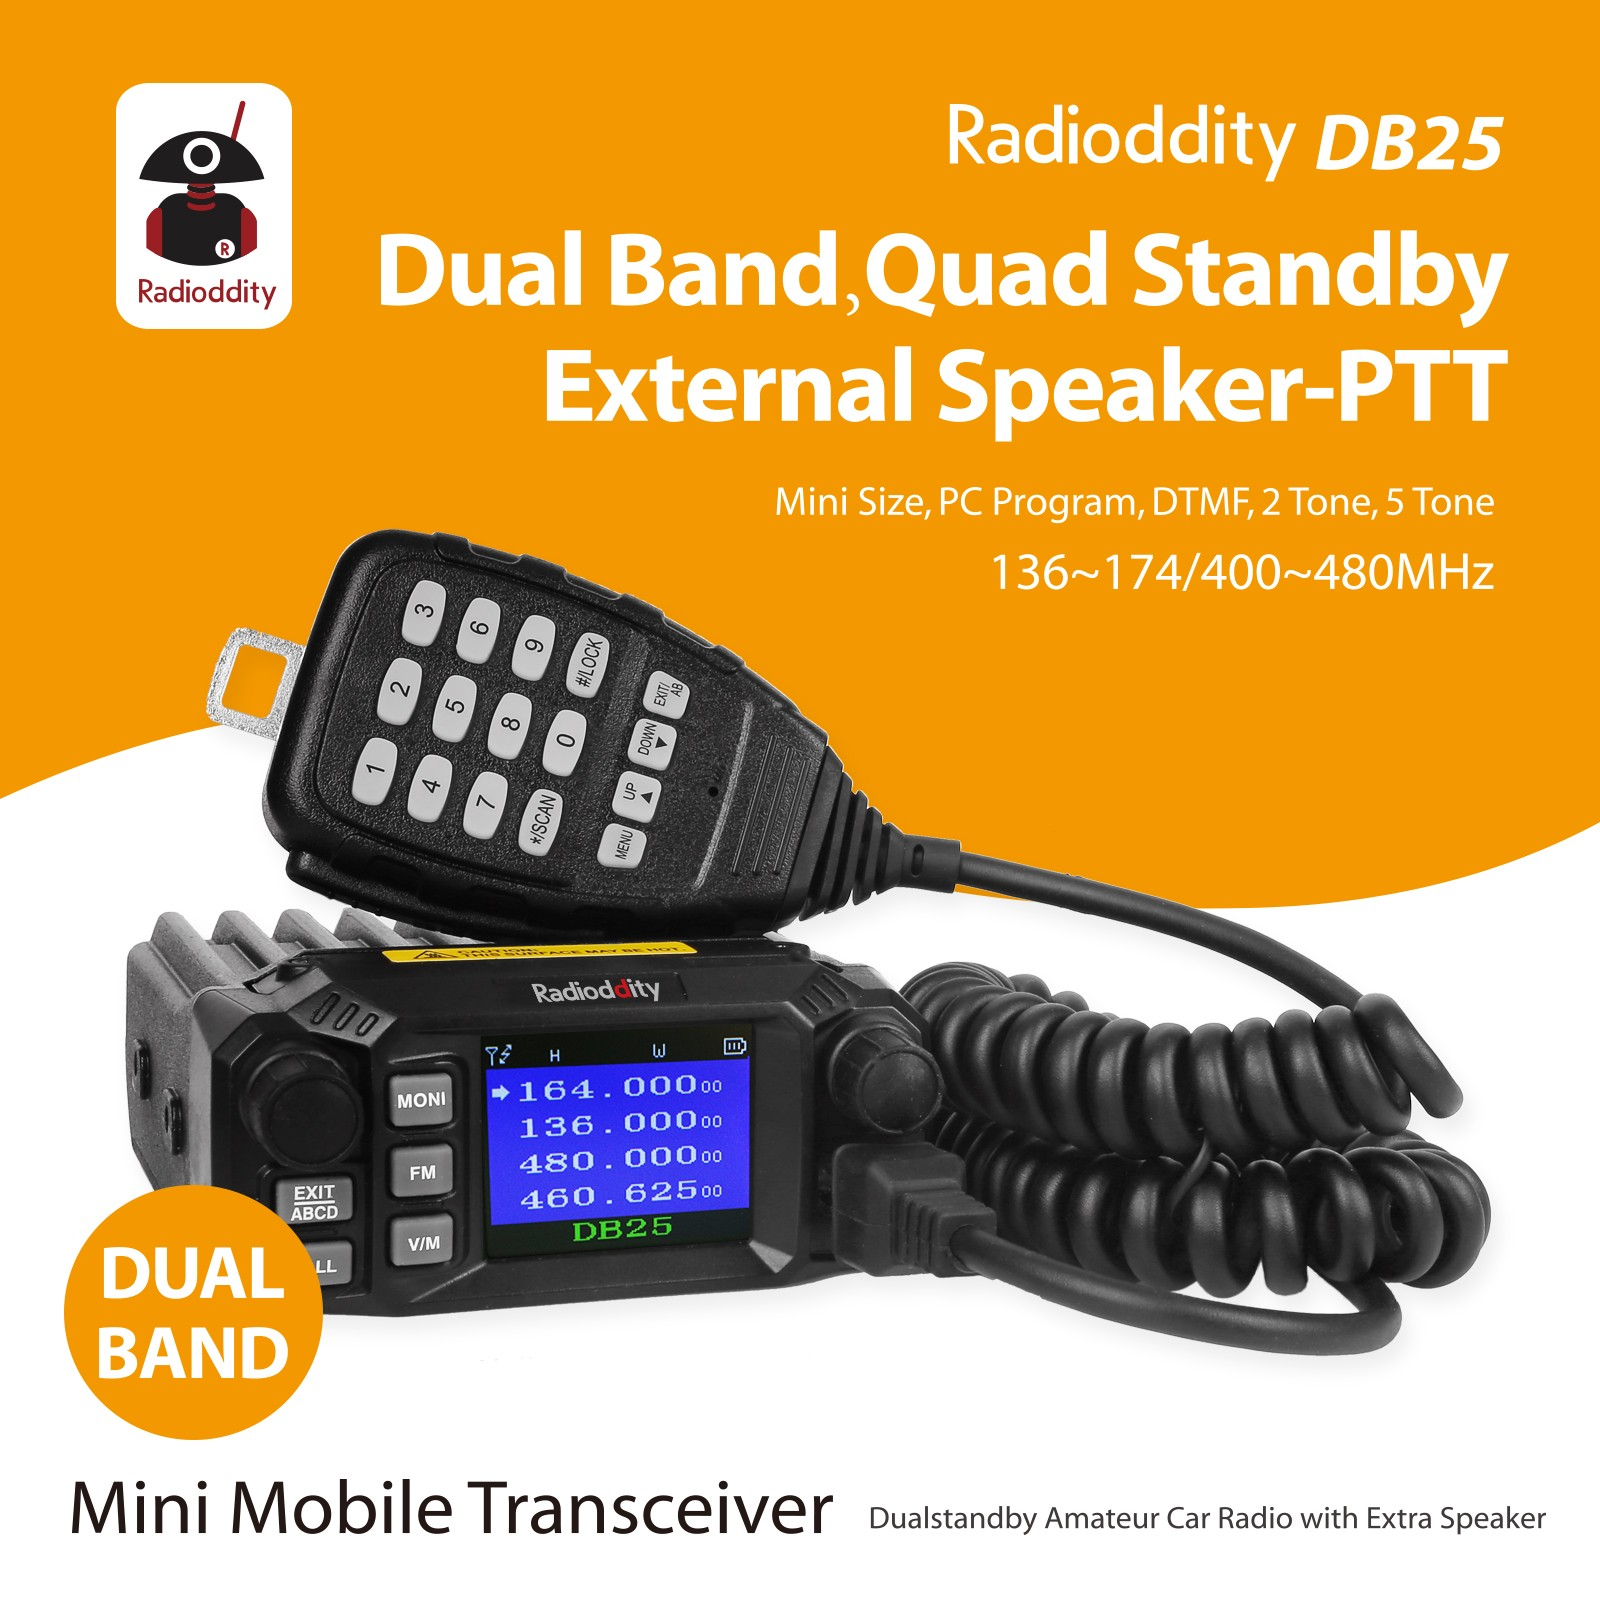 Radioddity DB25 Dual Band Quad-standby Mini Mobile Car Truck Radio, VHF UHF 144/440 MHz, 25W/10W Car Transceiver with Programming Cable & CD